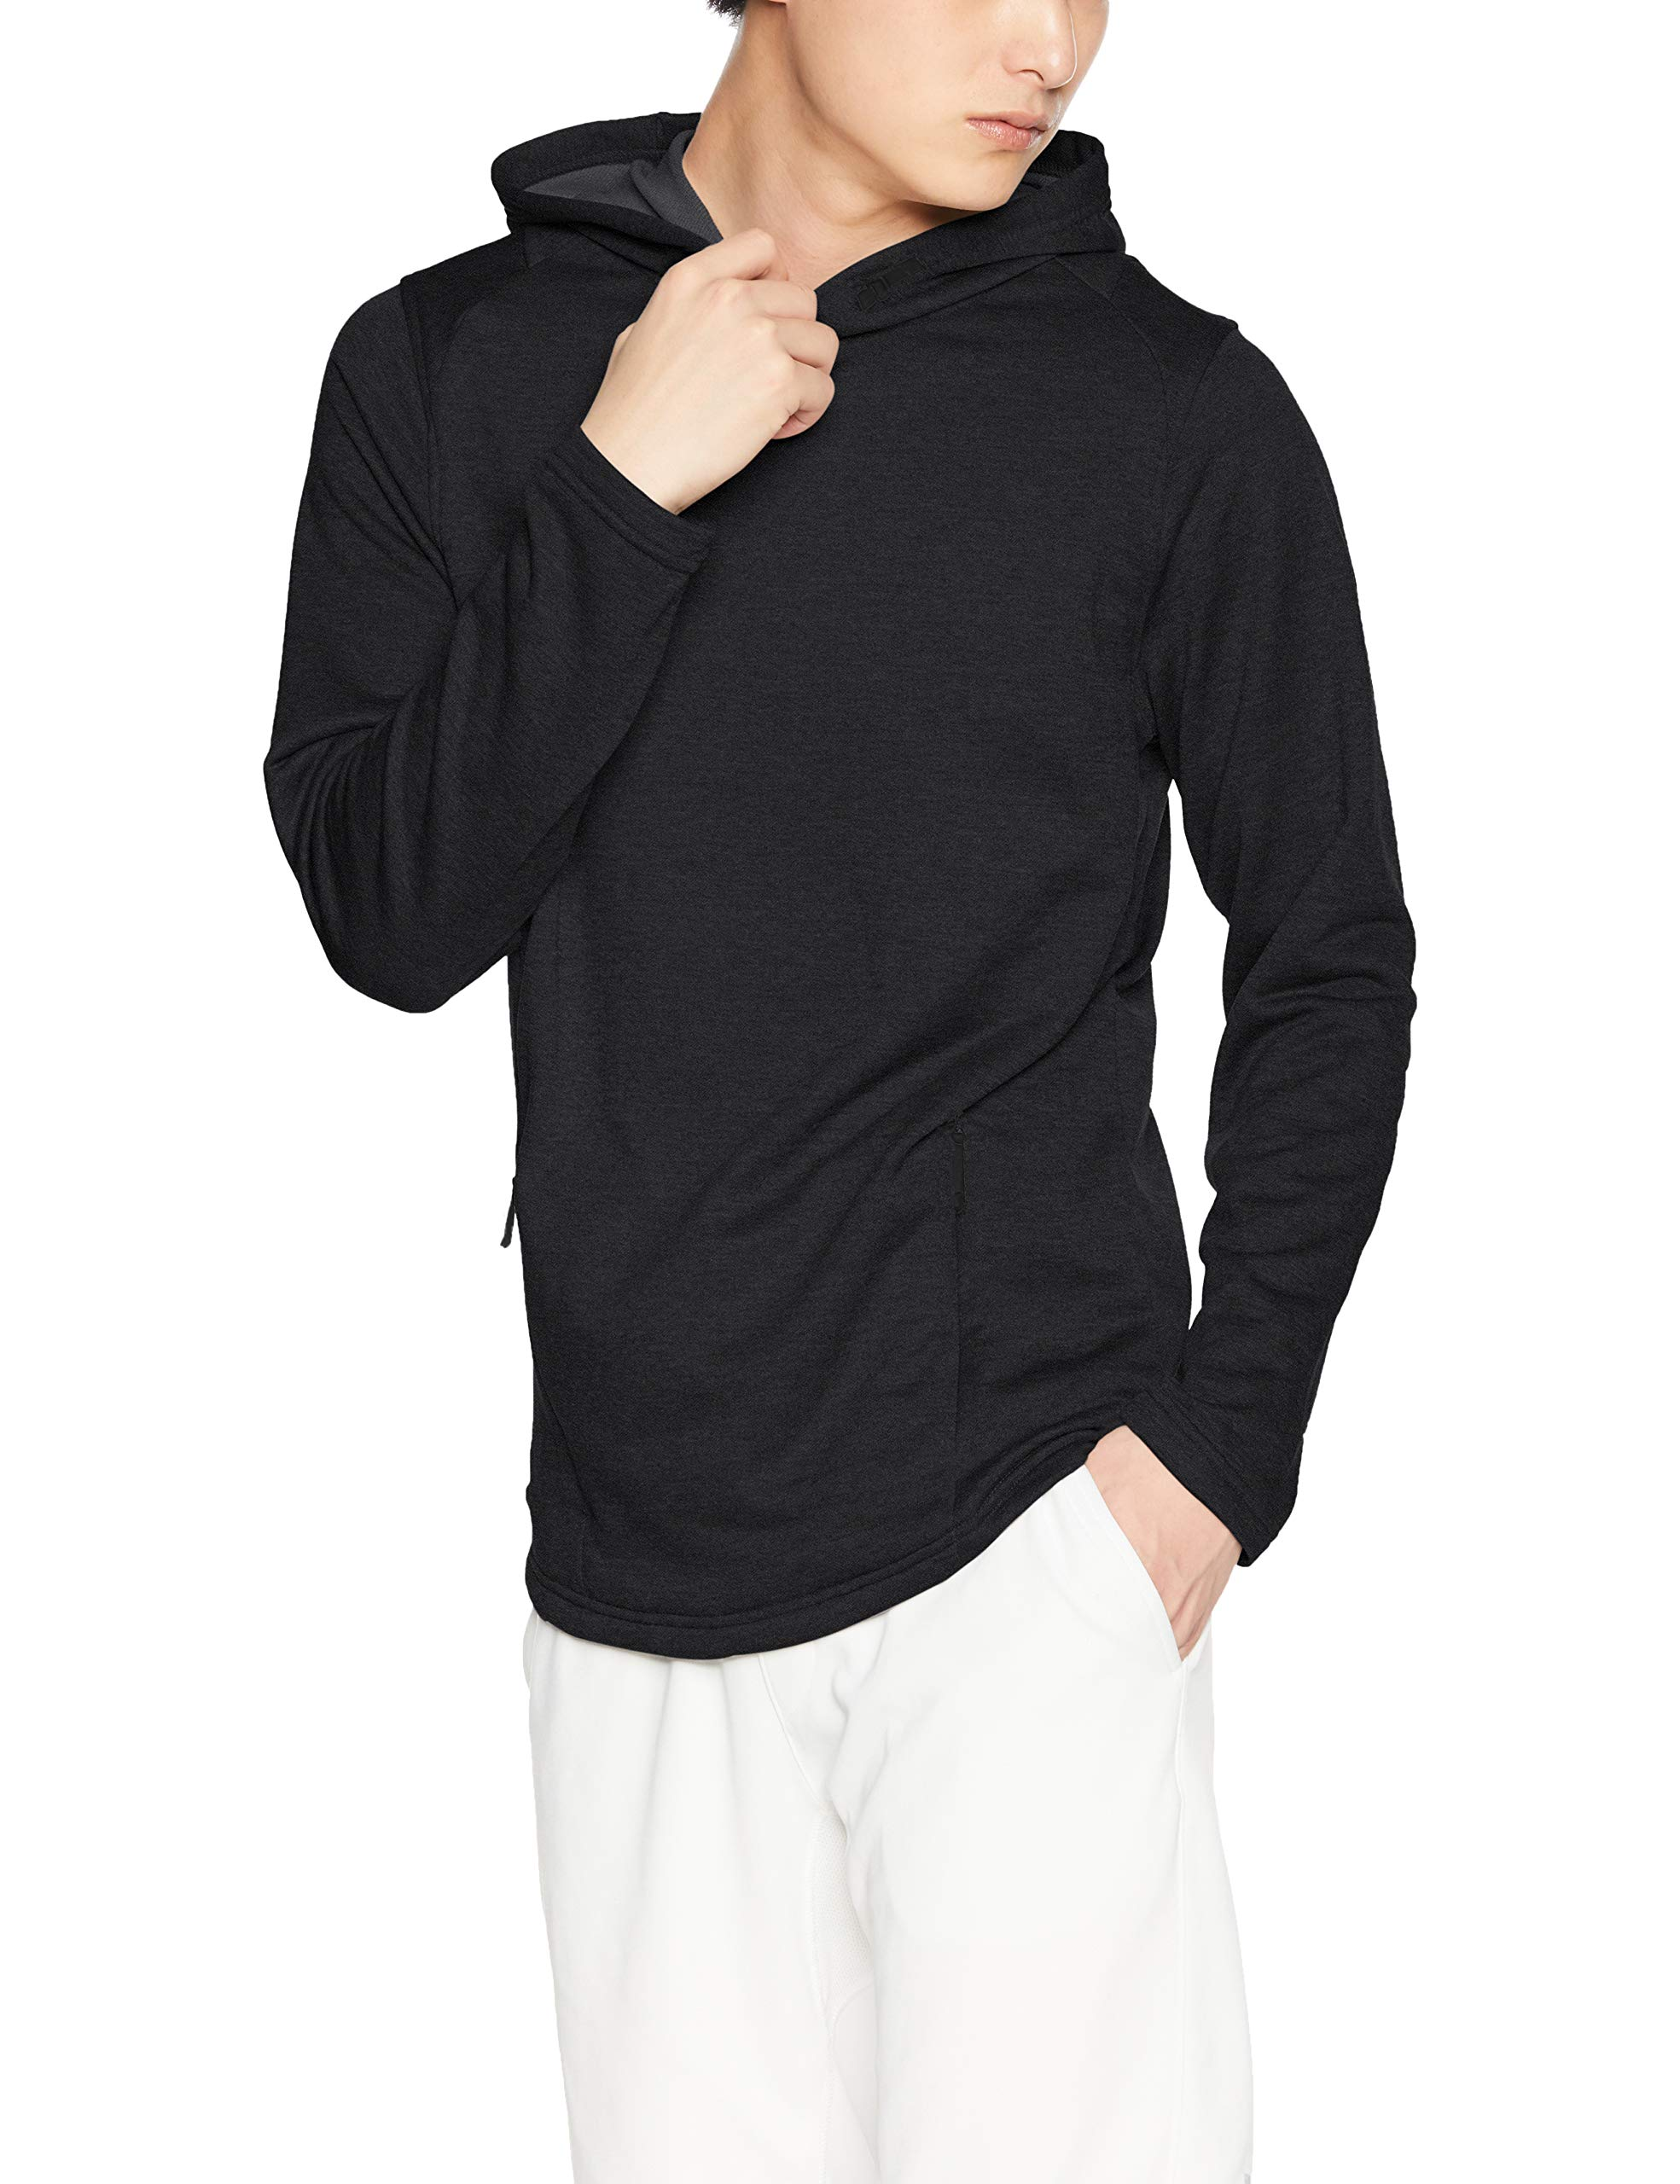 Under Armour Men's MK-1 Terry Hoodie, Black (001)/Black, X-Large by Under Armour